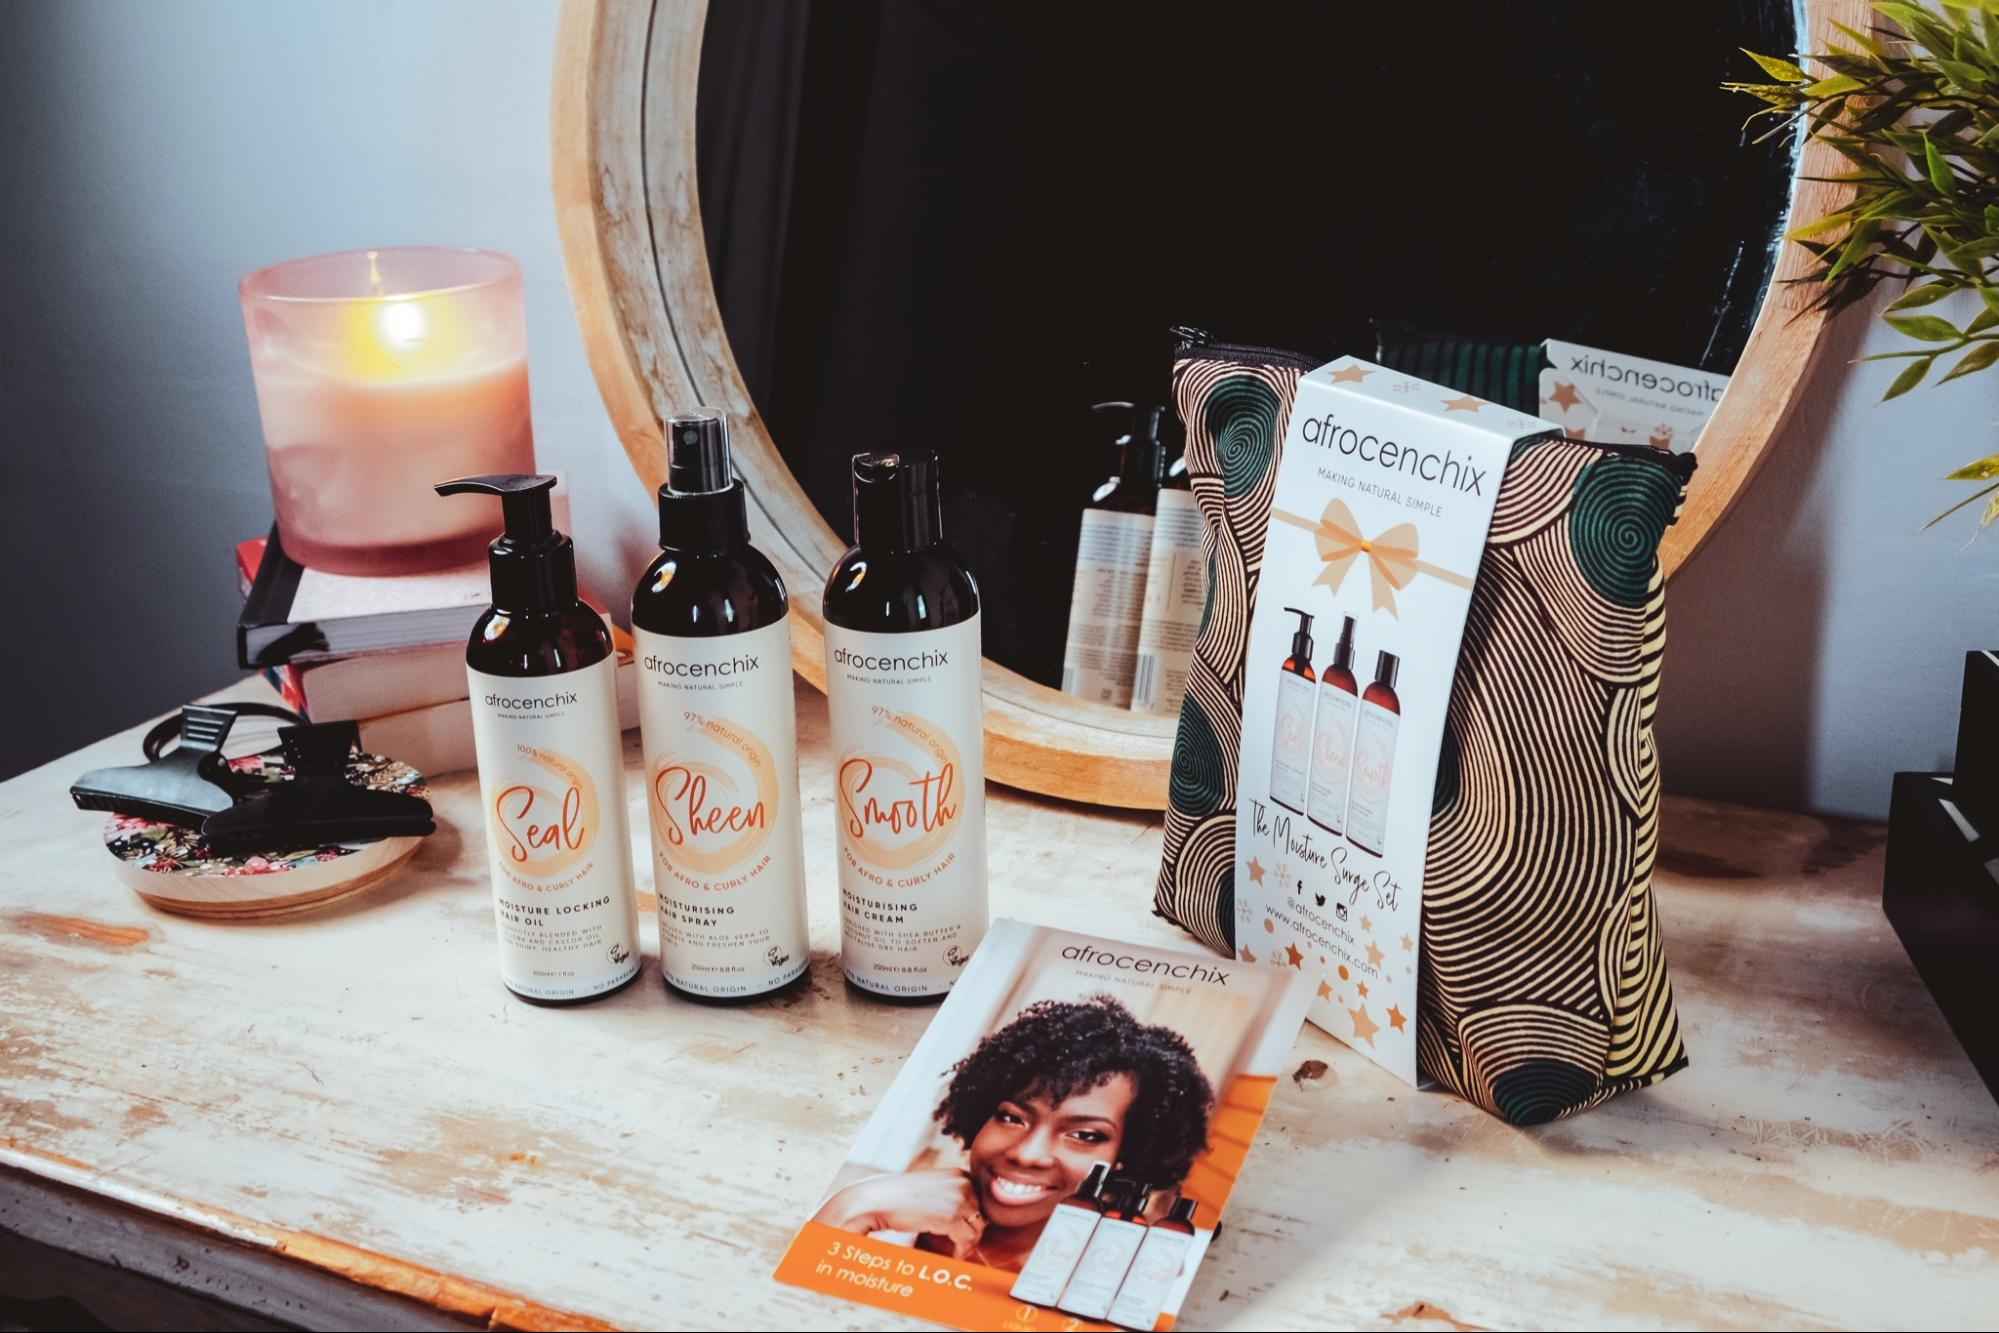 A selection of Afrocenchix products backdropped by a makeup back and mirror along with books and a candle.